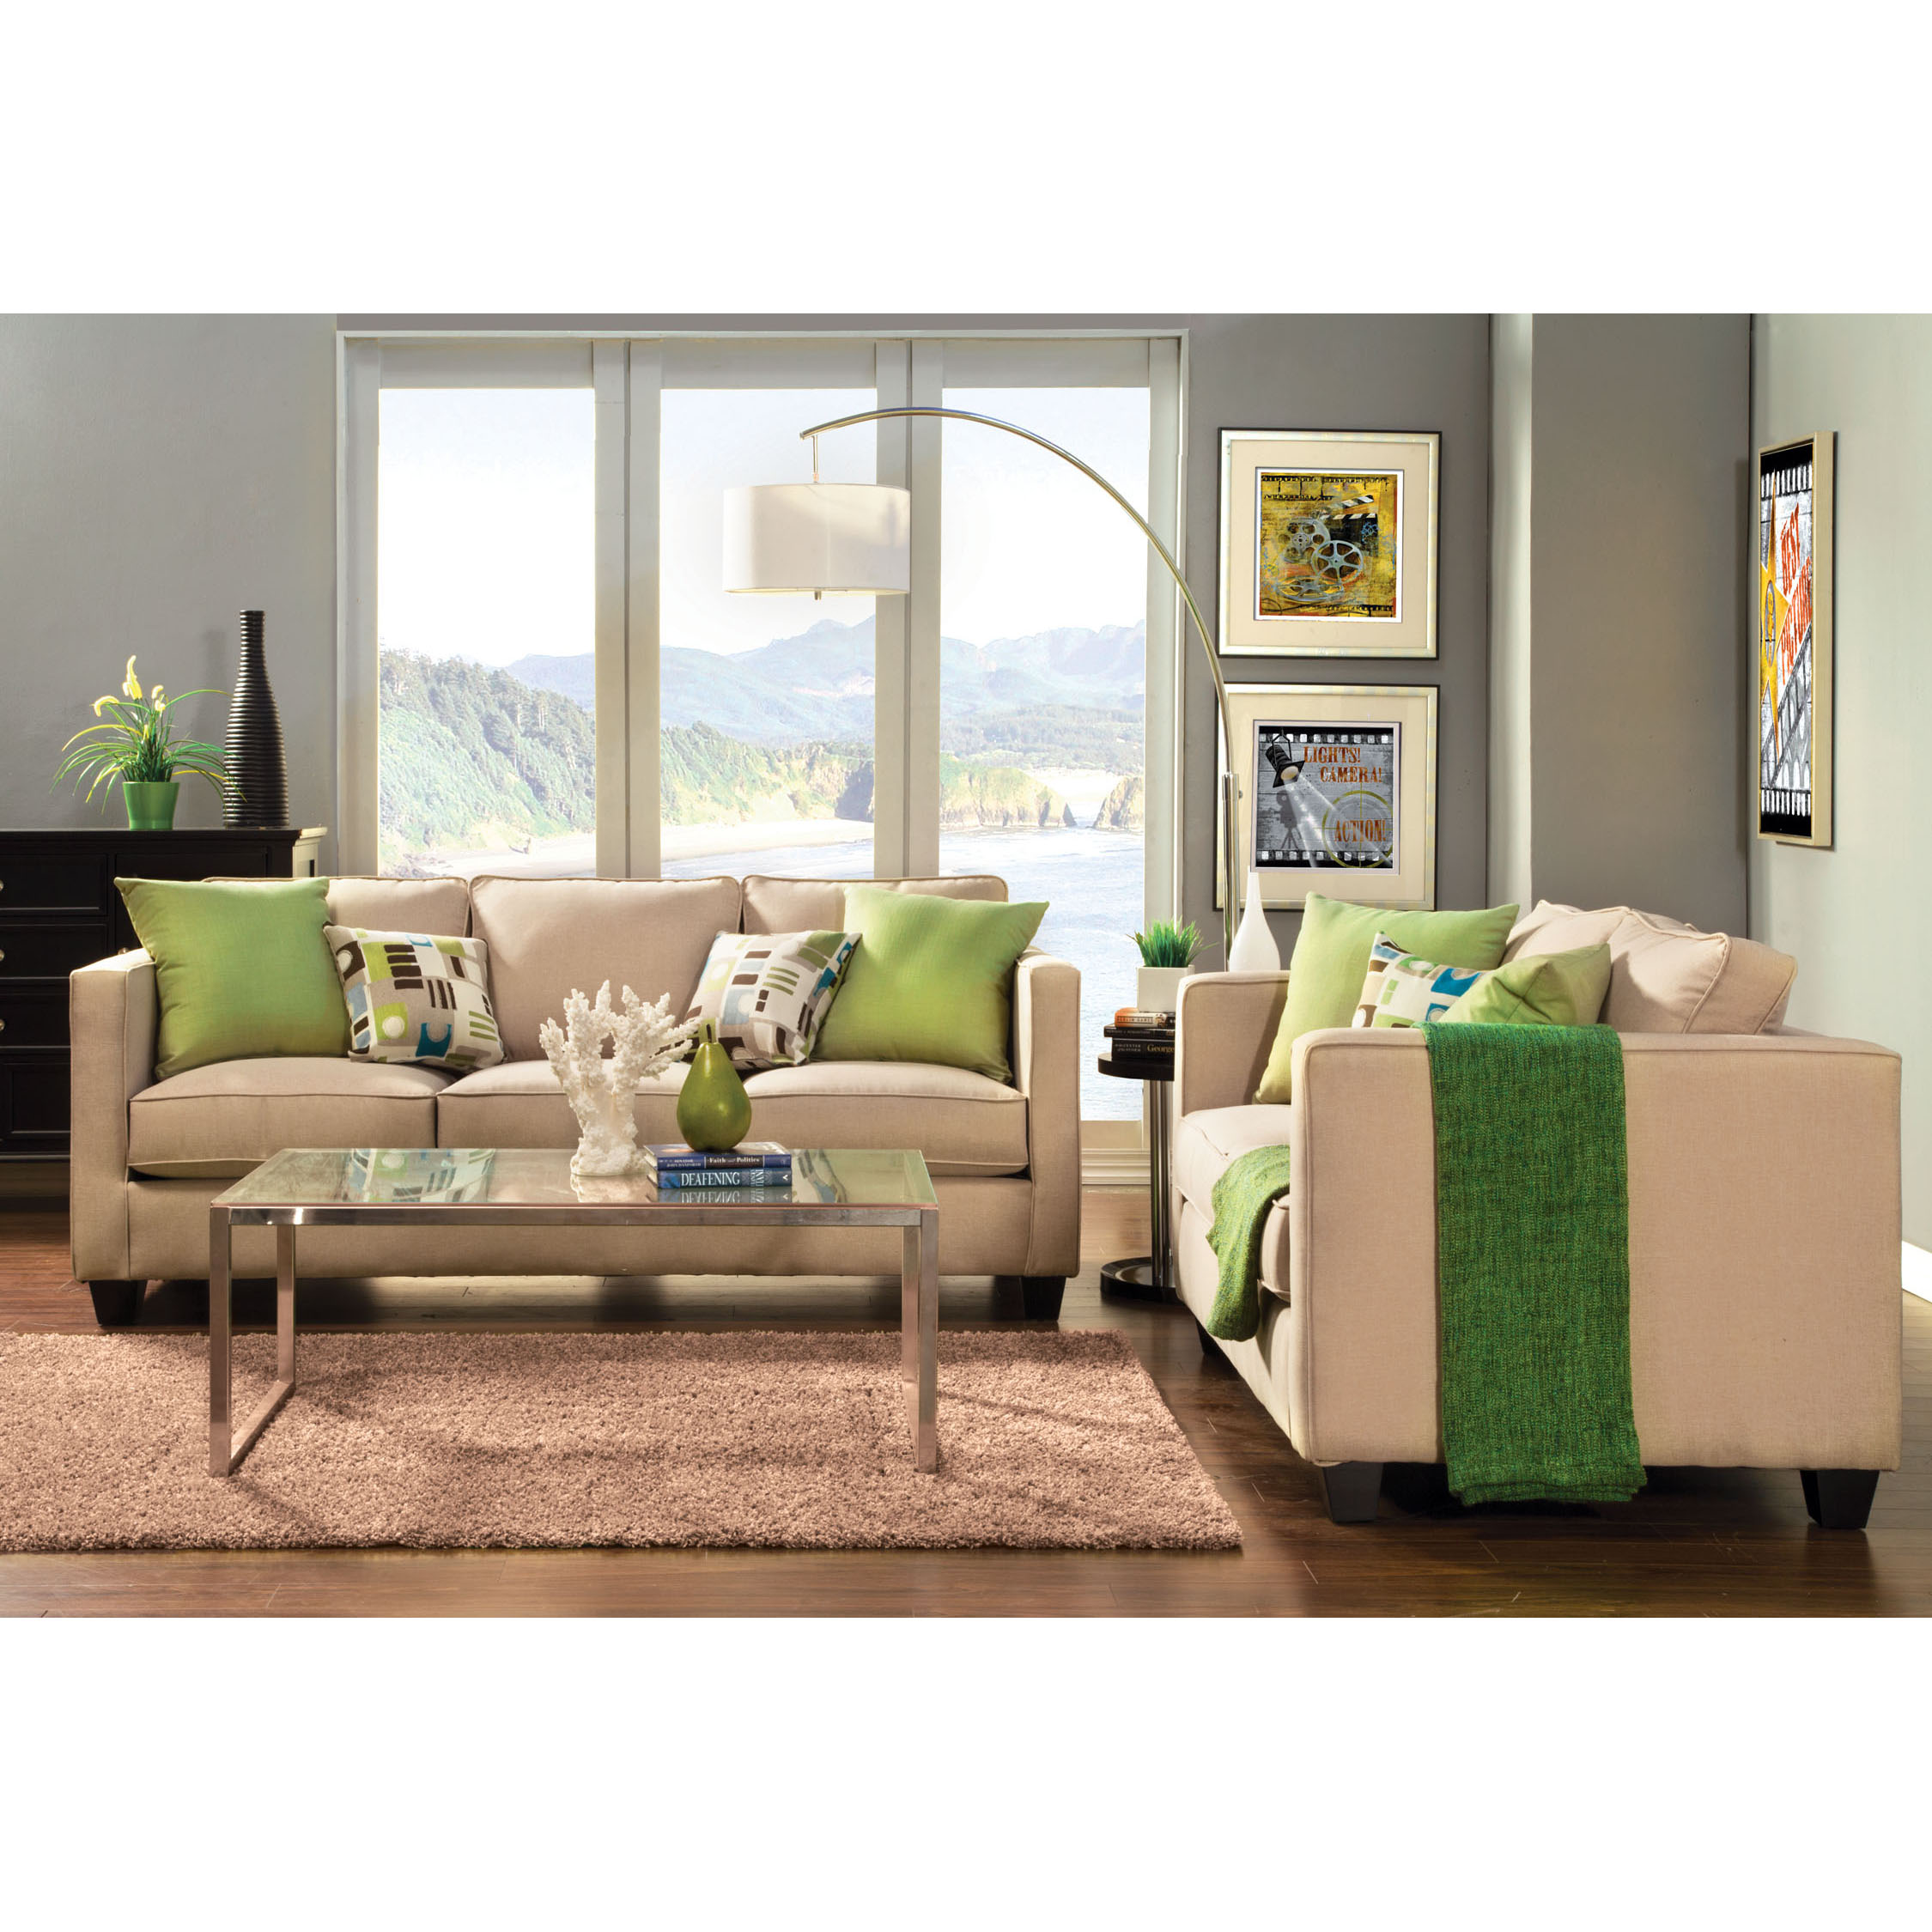 Furniture of America Vieve Transitional Style Sofa